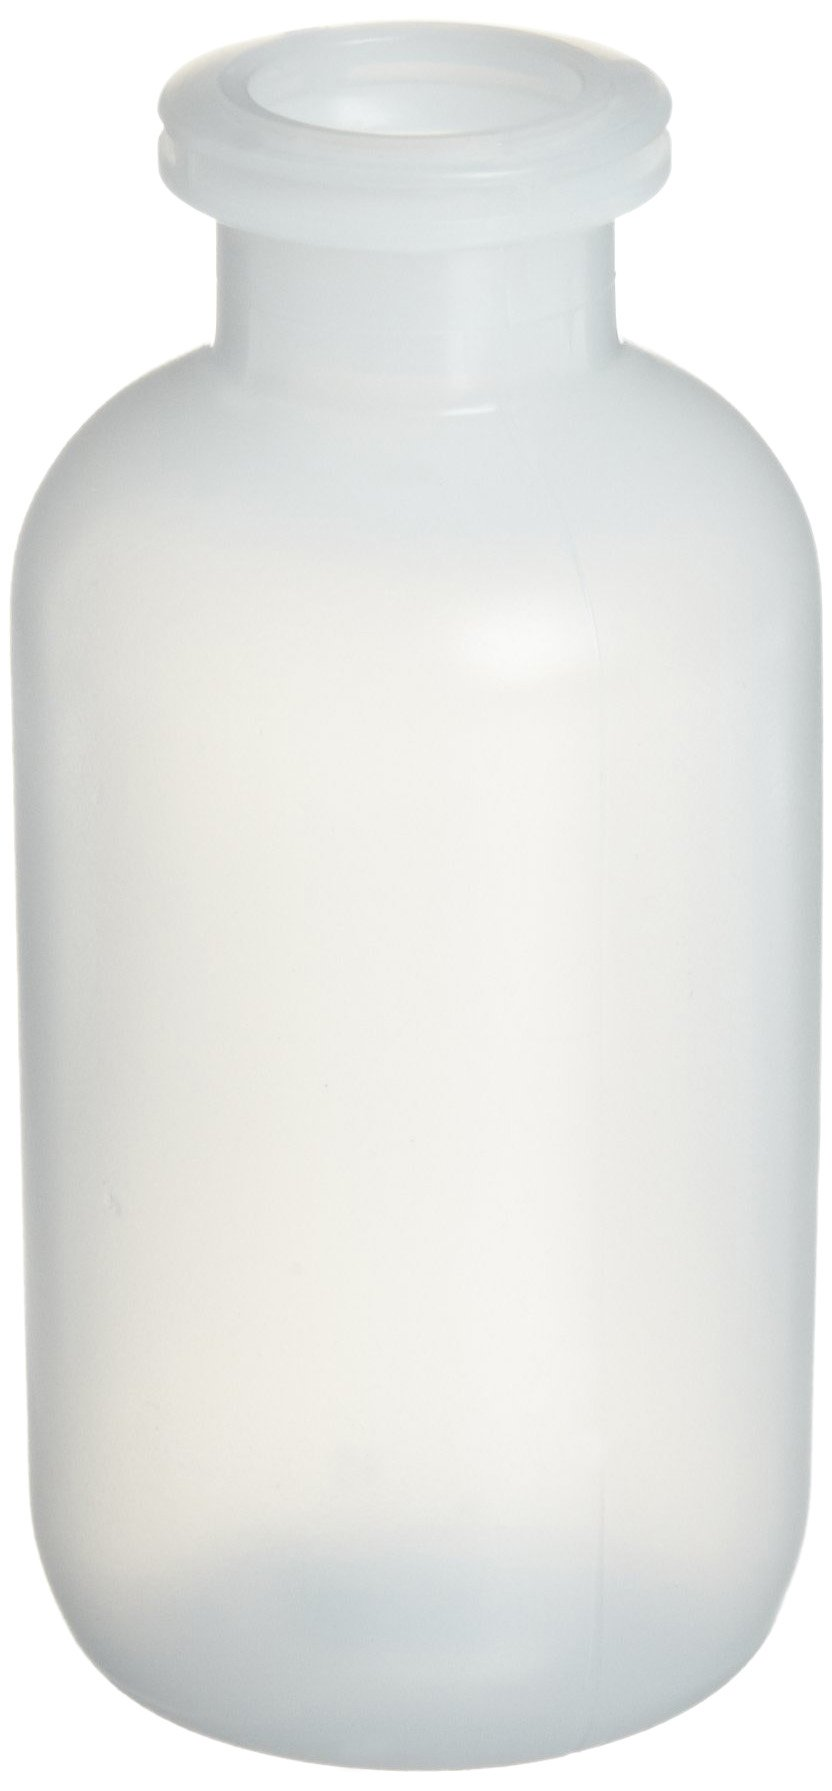 Wheaton 224037 Serum Bottle 120mL, HDPE, Mouth Dimensions: 13mm ID x 20mm OD, Bottle Dimensions: 47mm Diameter x 103mm Height (Case of 100)